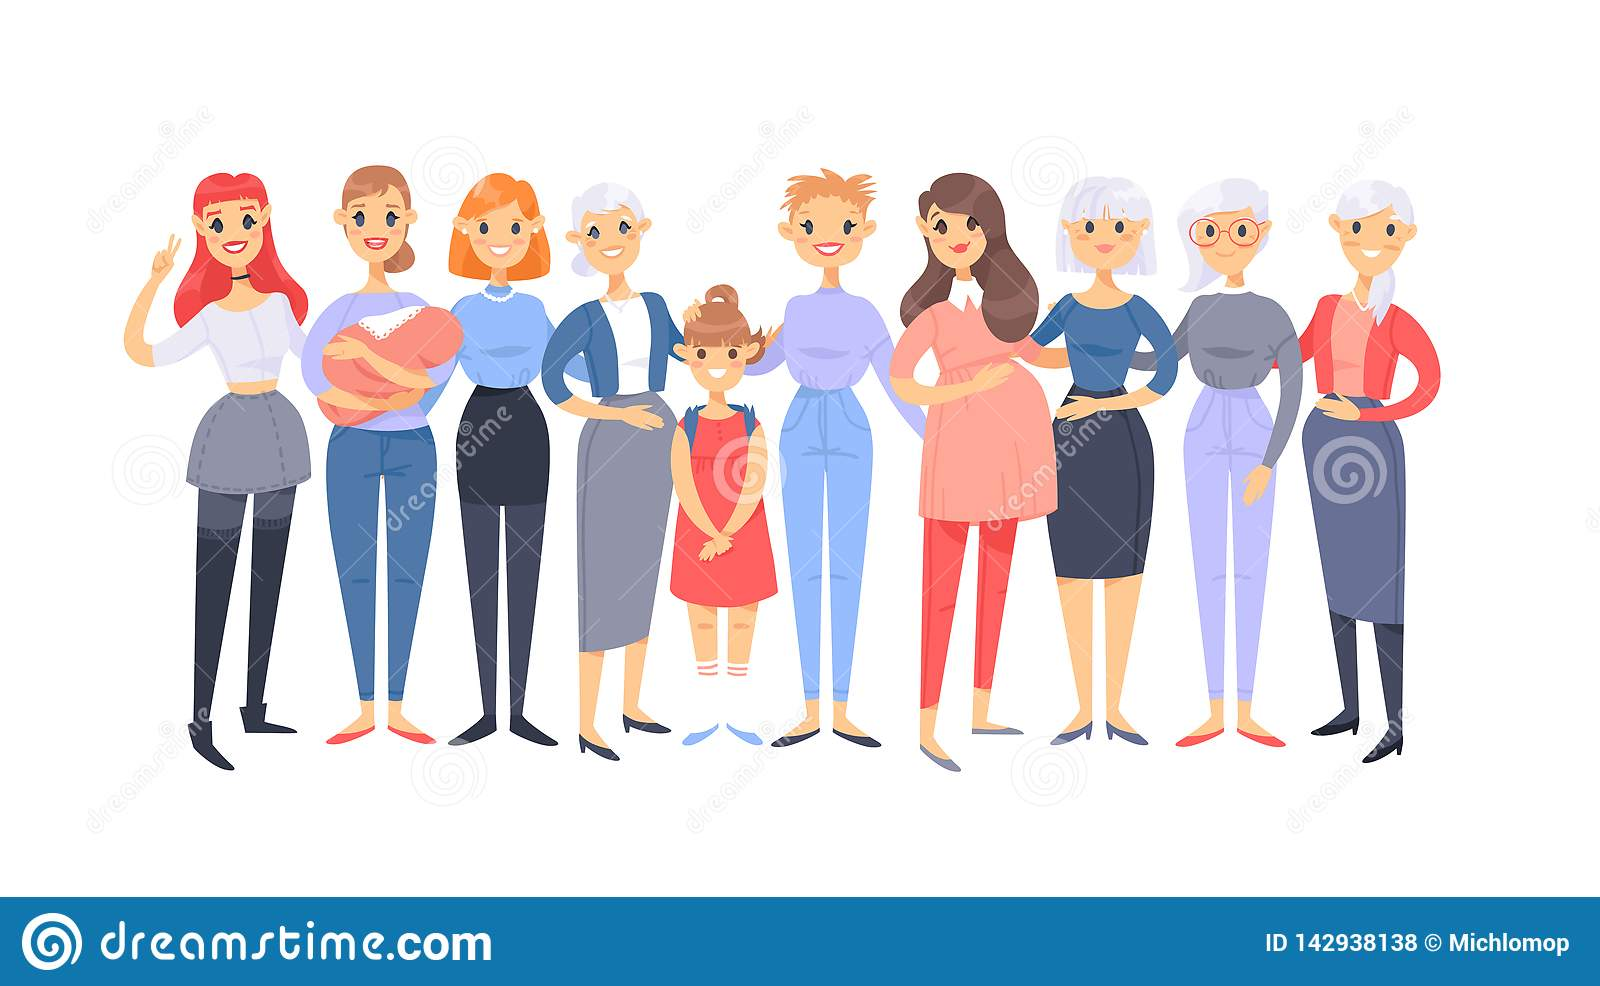 Set of a group of different caucasian women. Cartoon style european characters of different ages. Vector illustration american